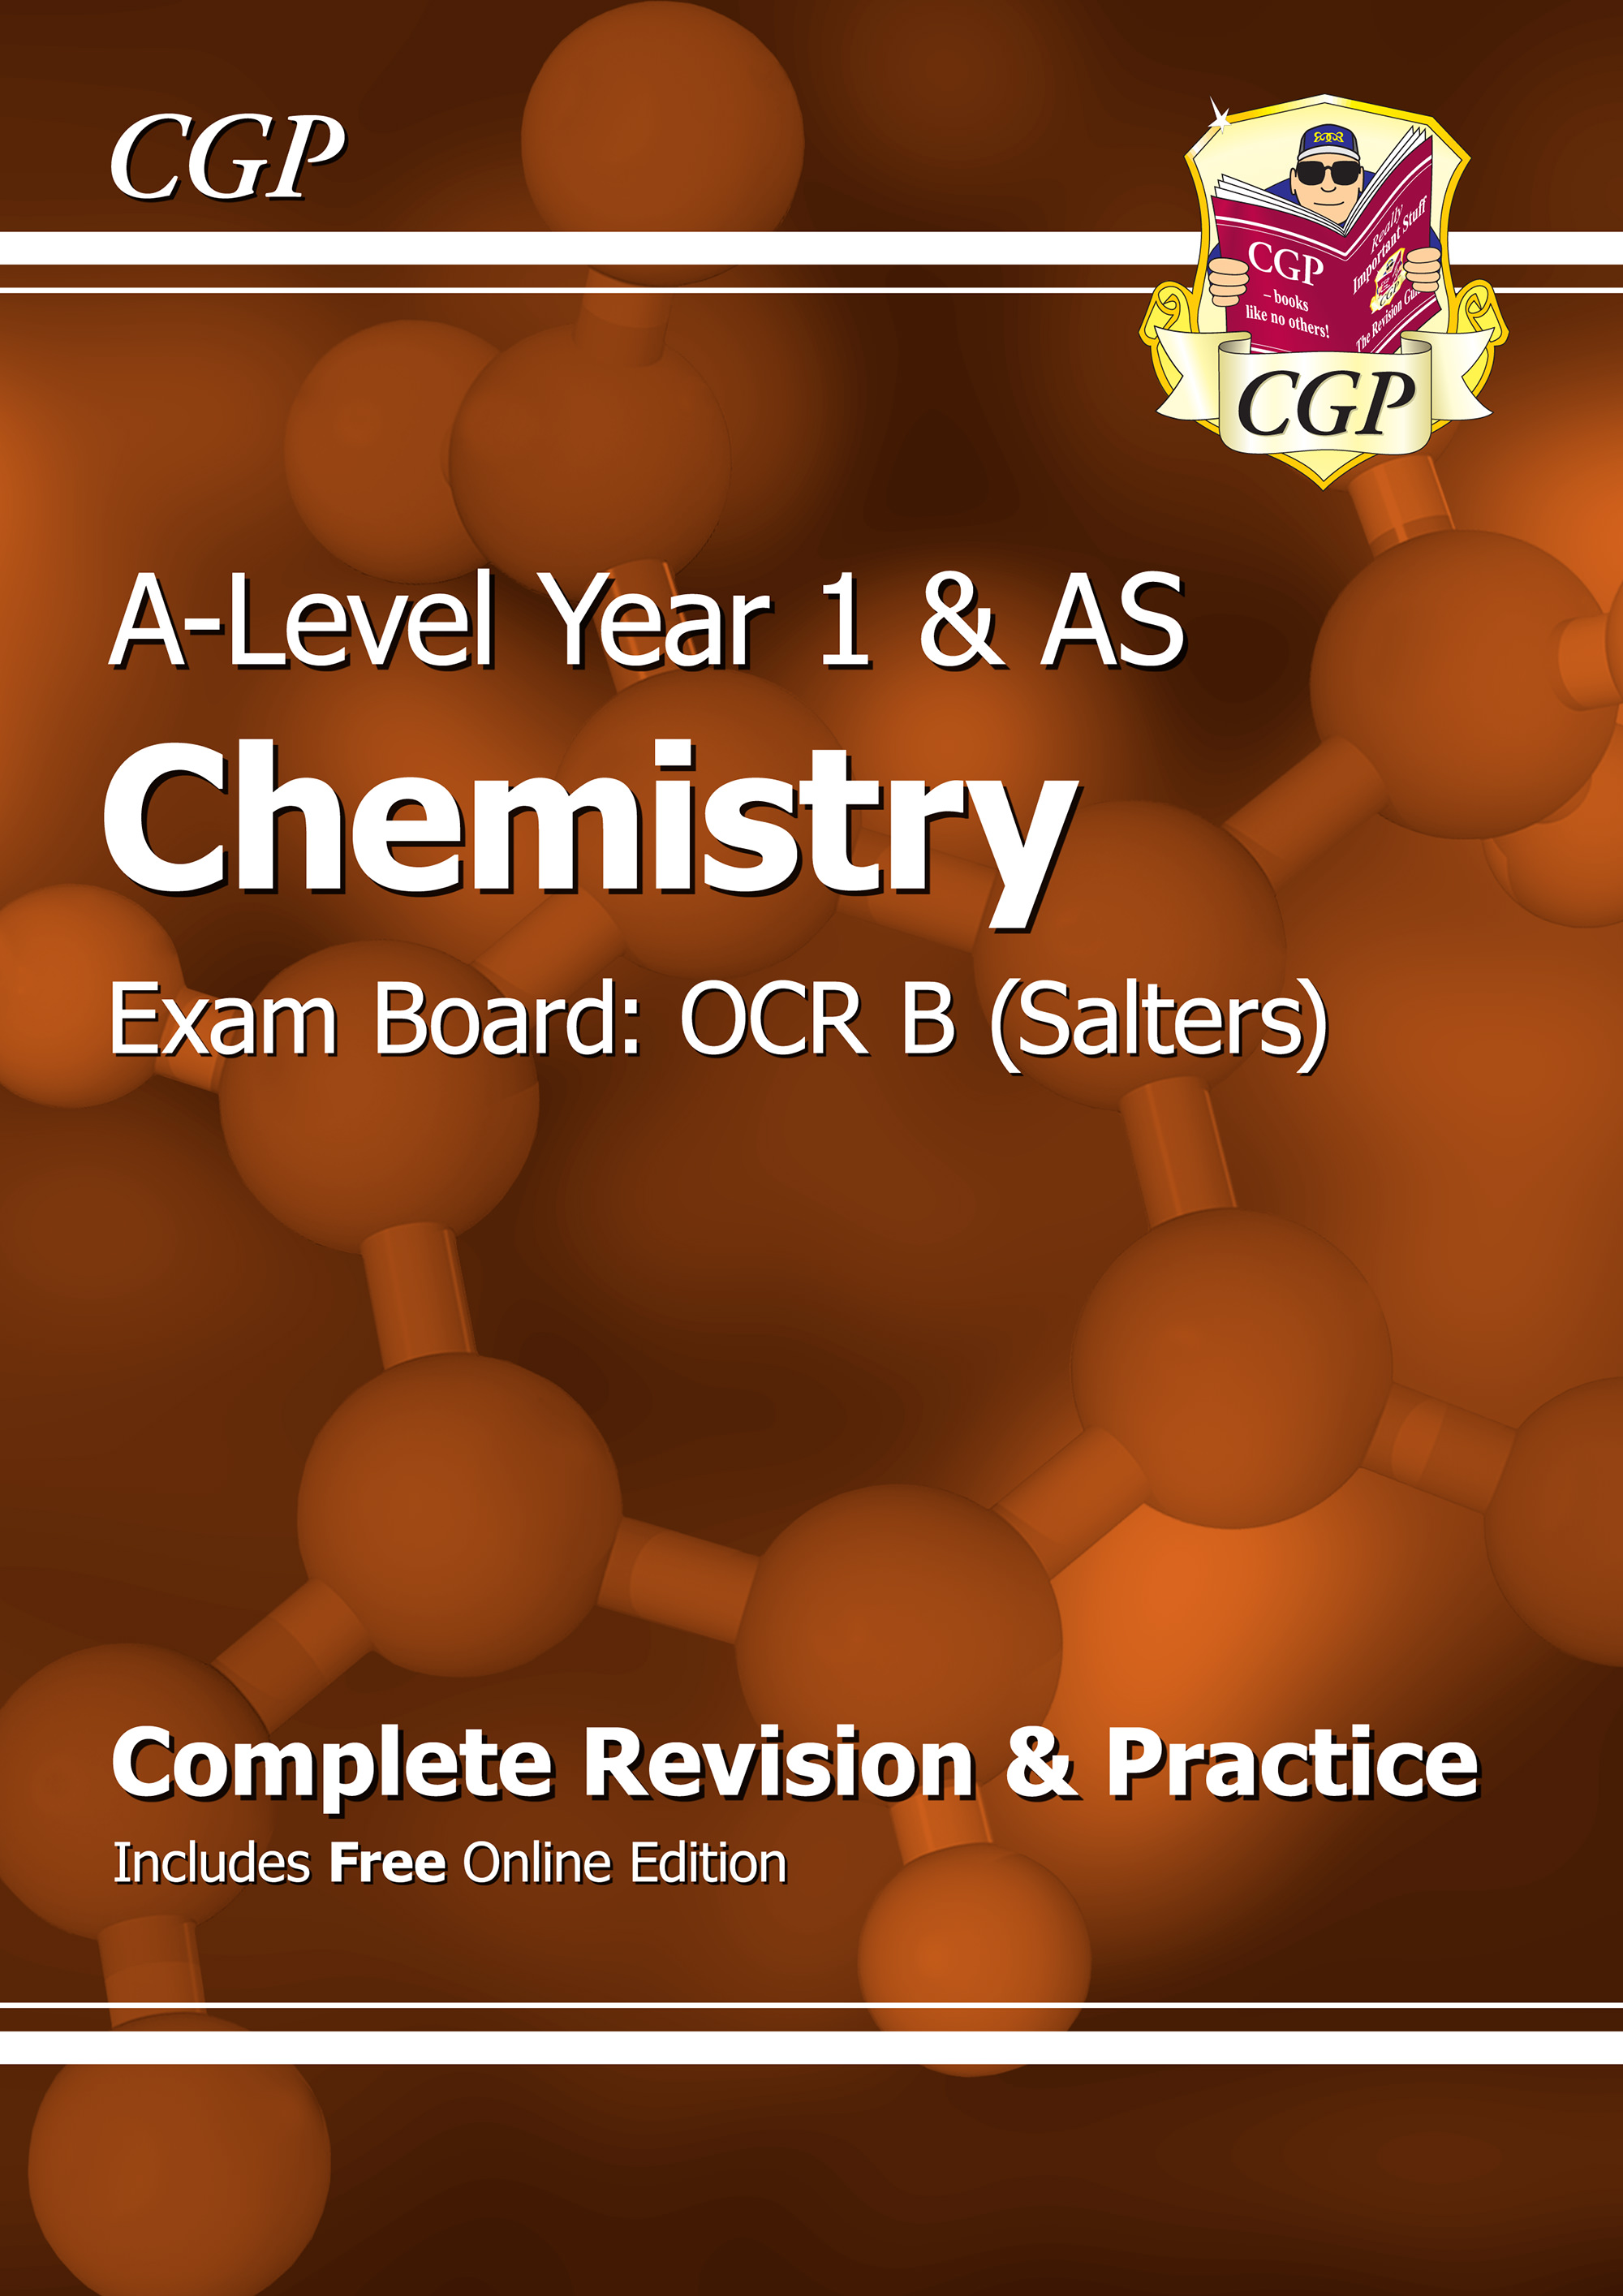 CRBR53 - A-Level Chemistry: OCR B Year 1 & AS Complete Revision & Practice with Online Edition